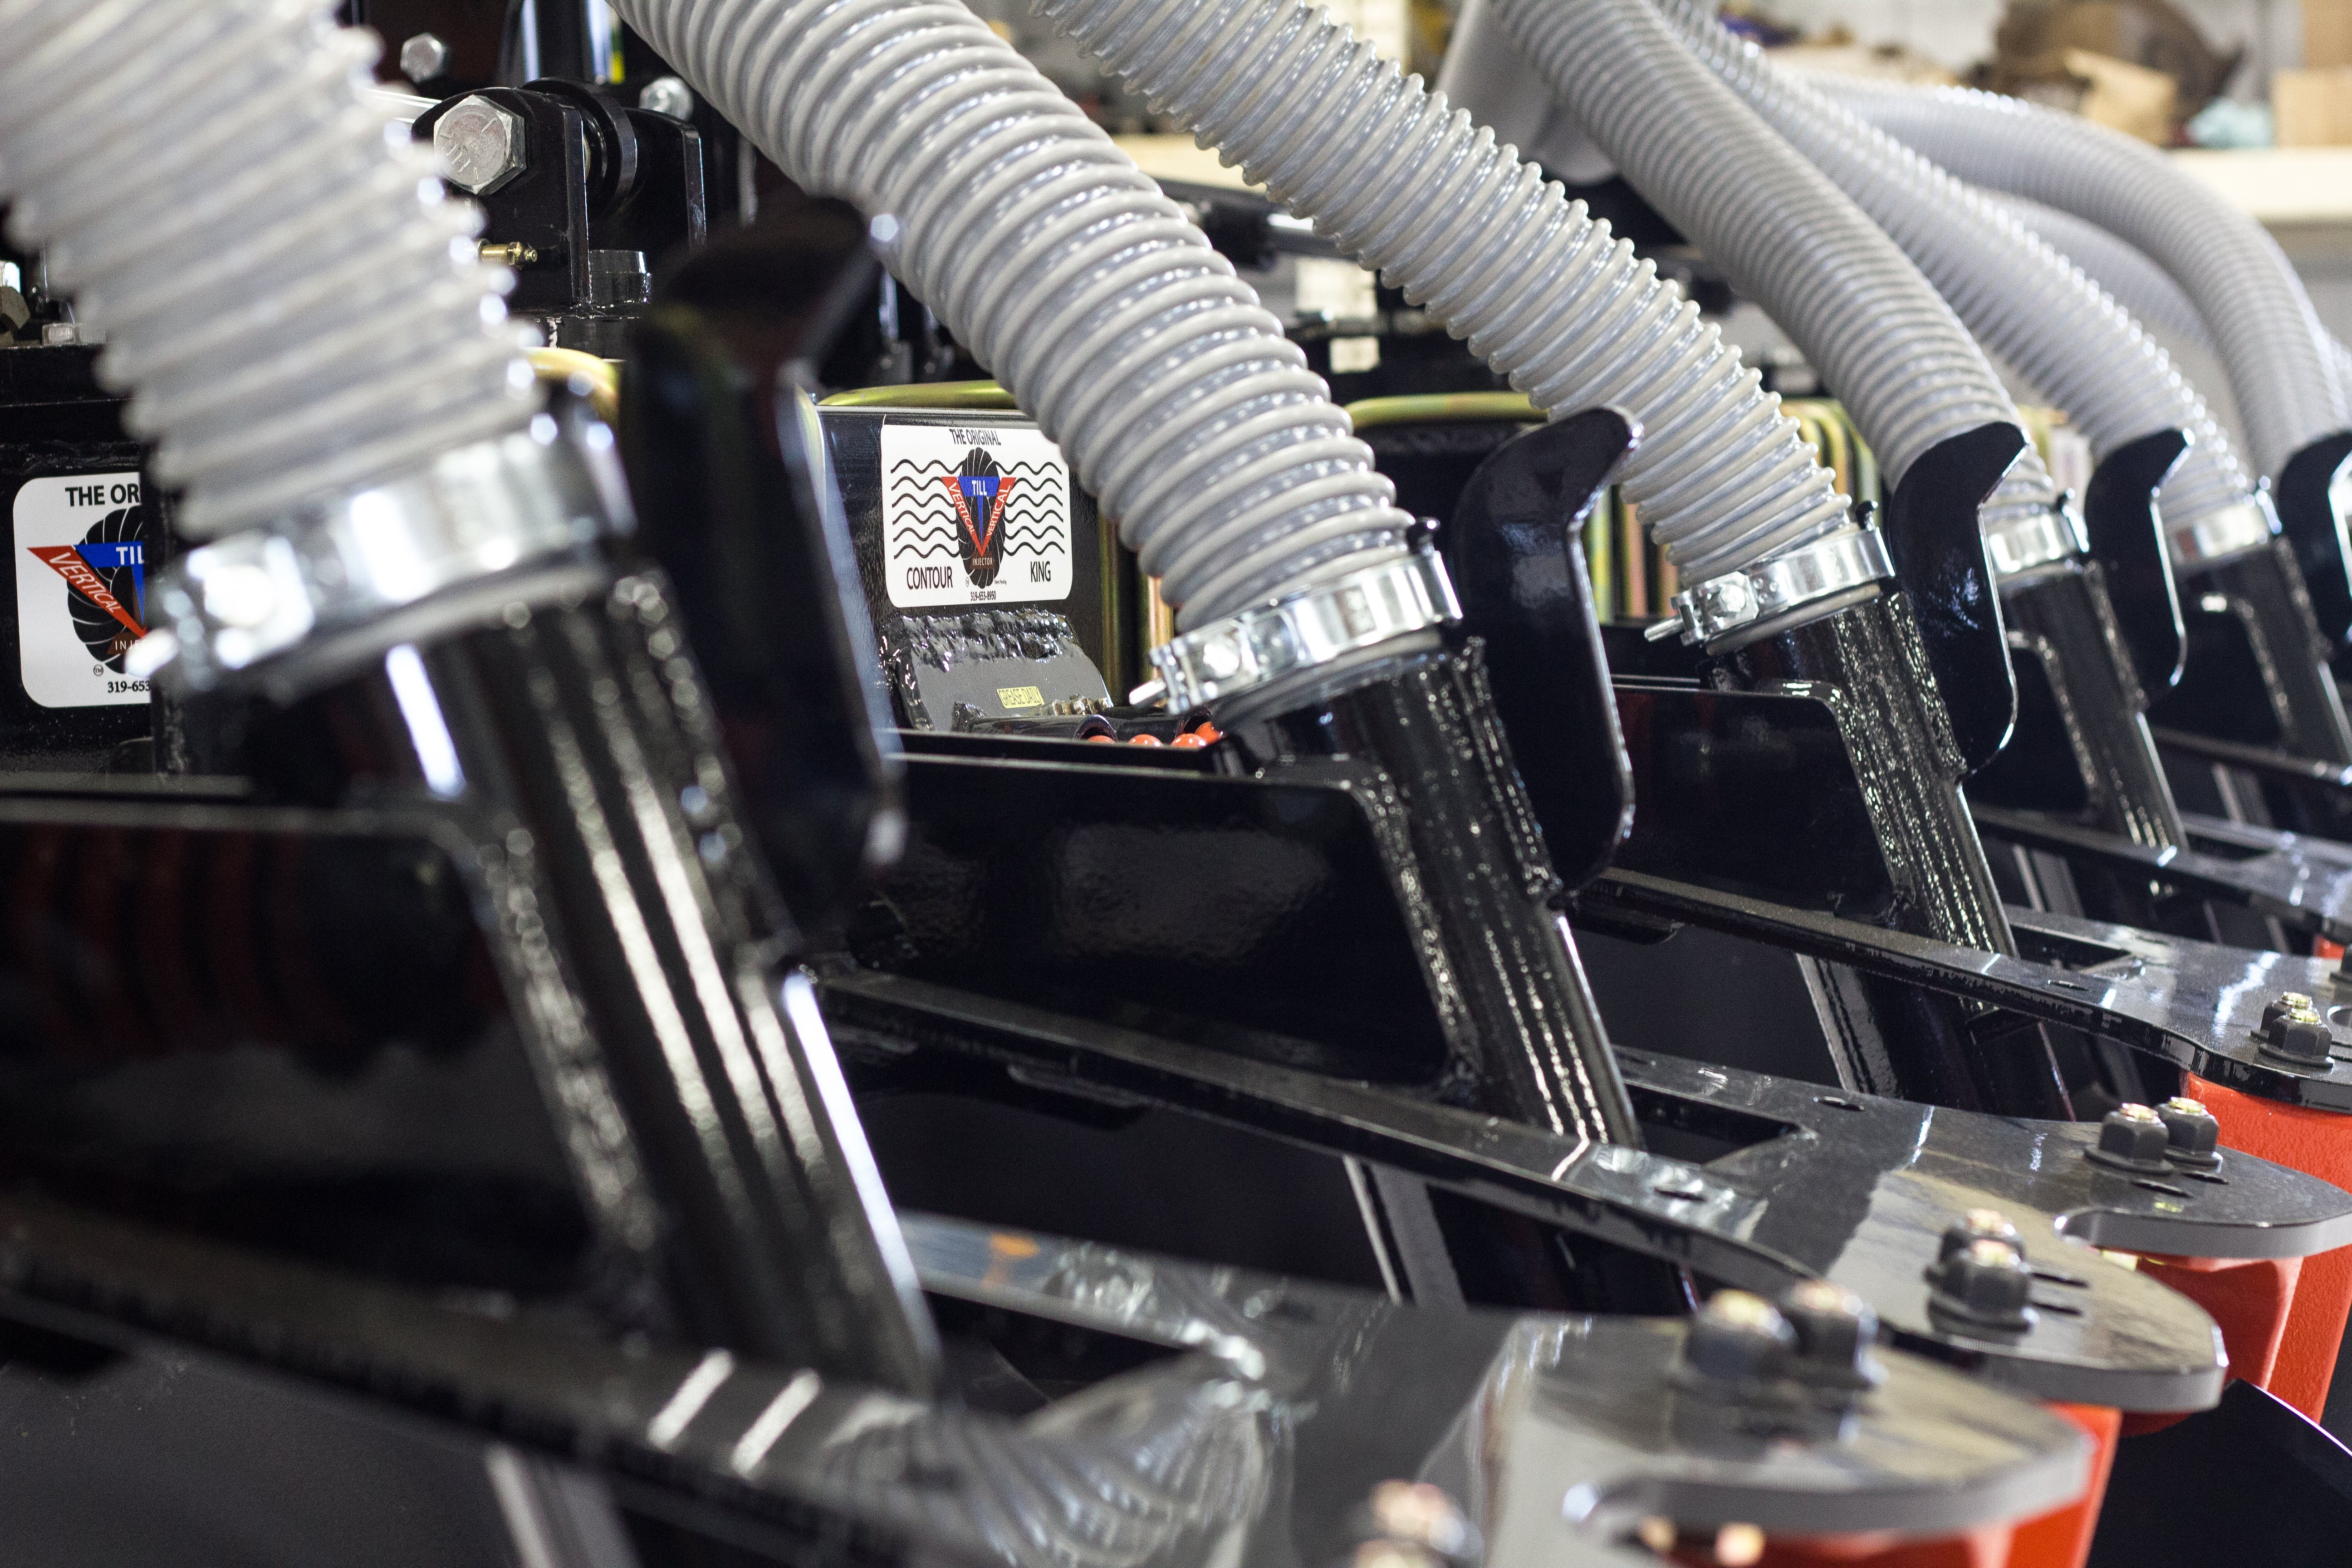 The Run Down on Vertical Till Injectors